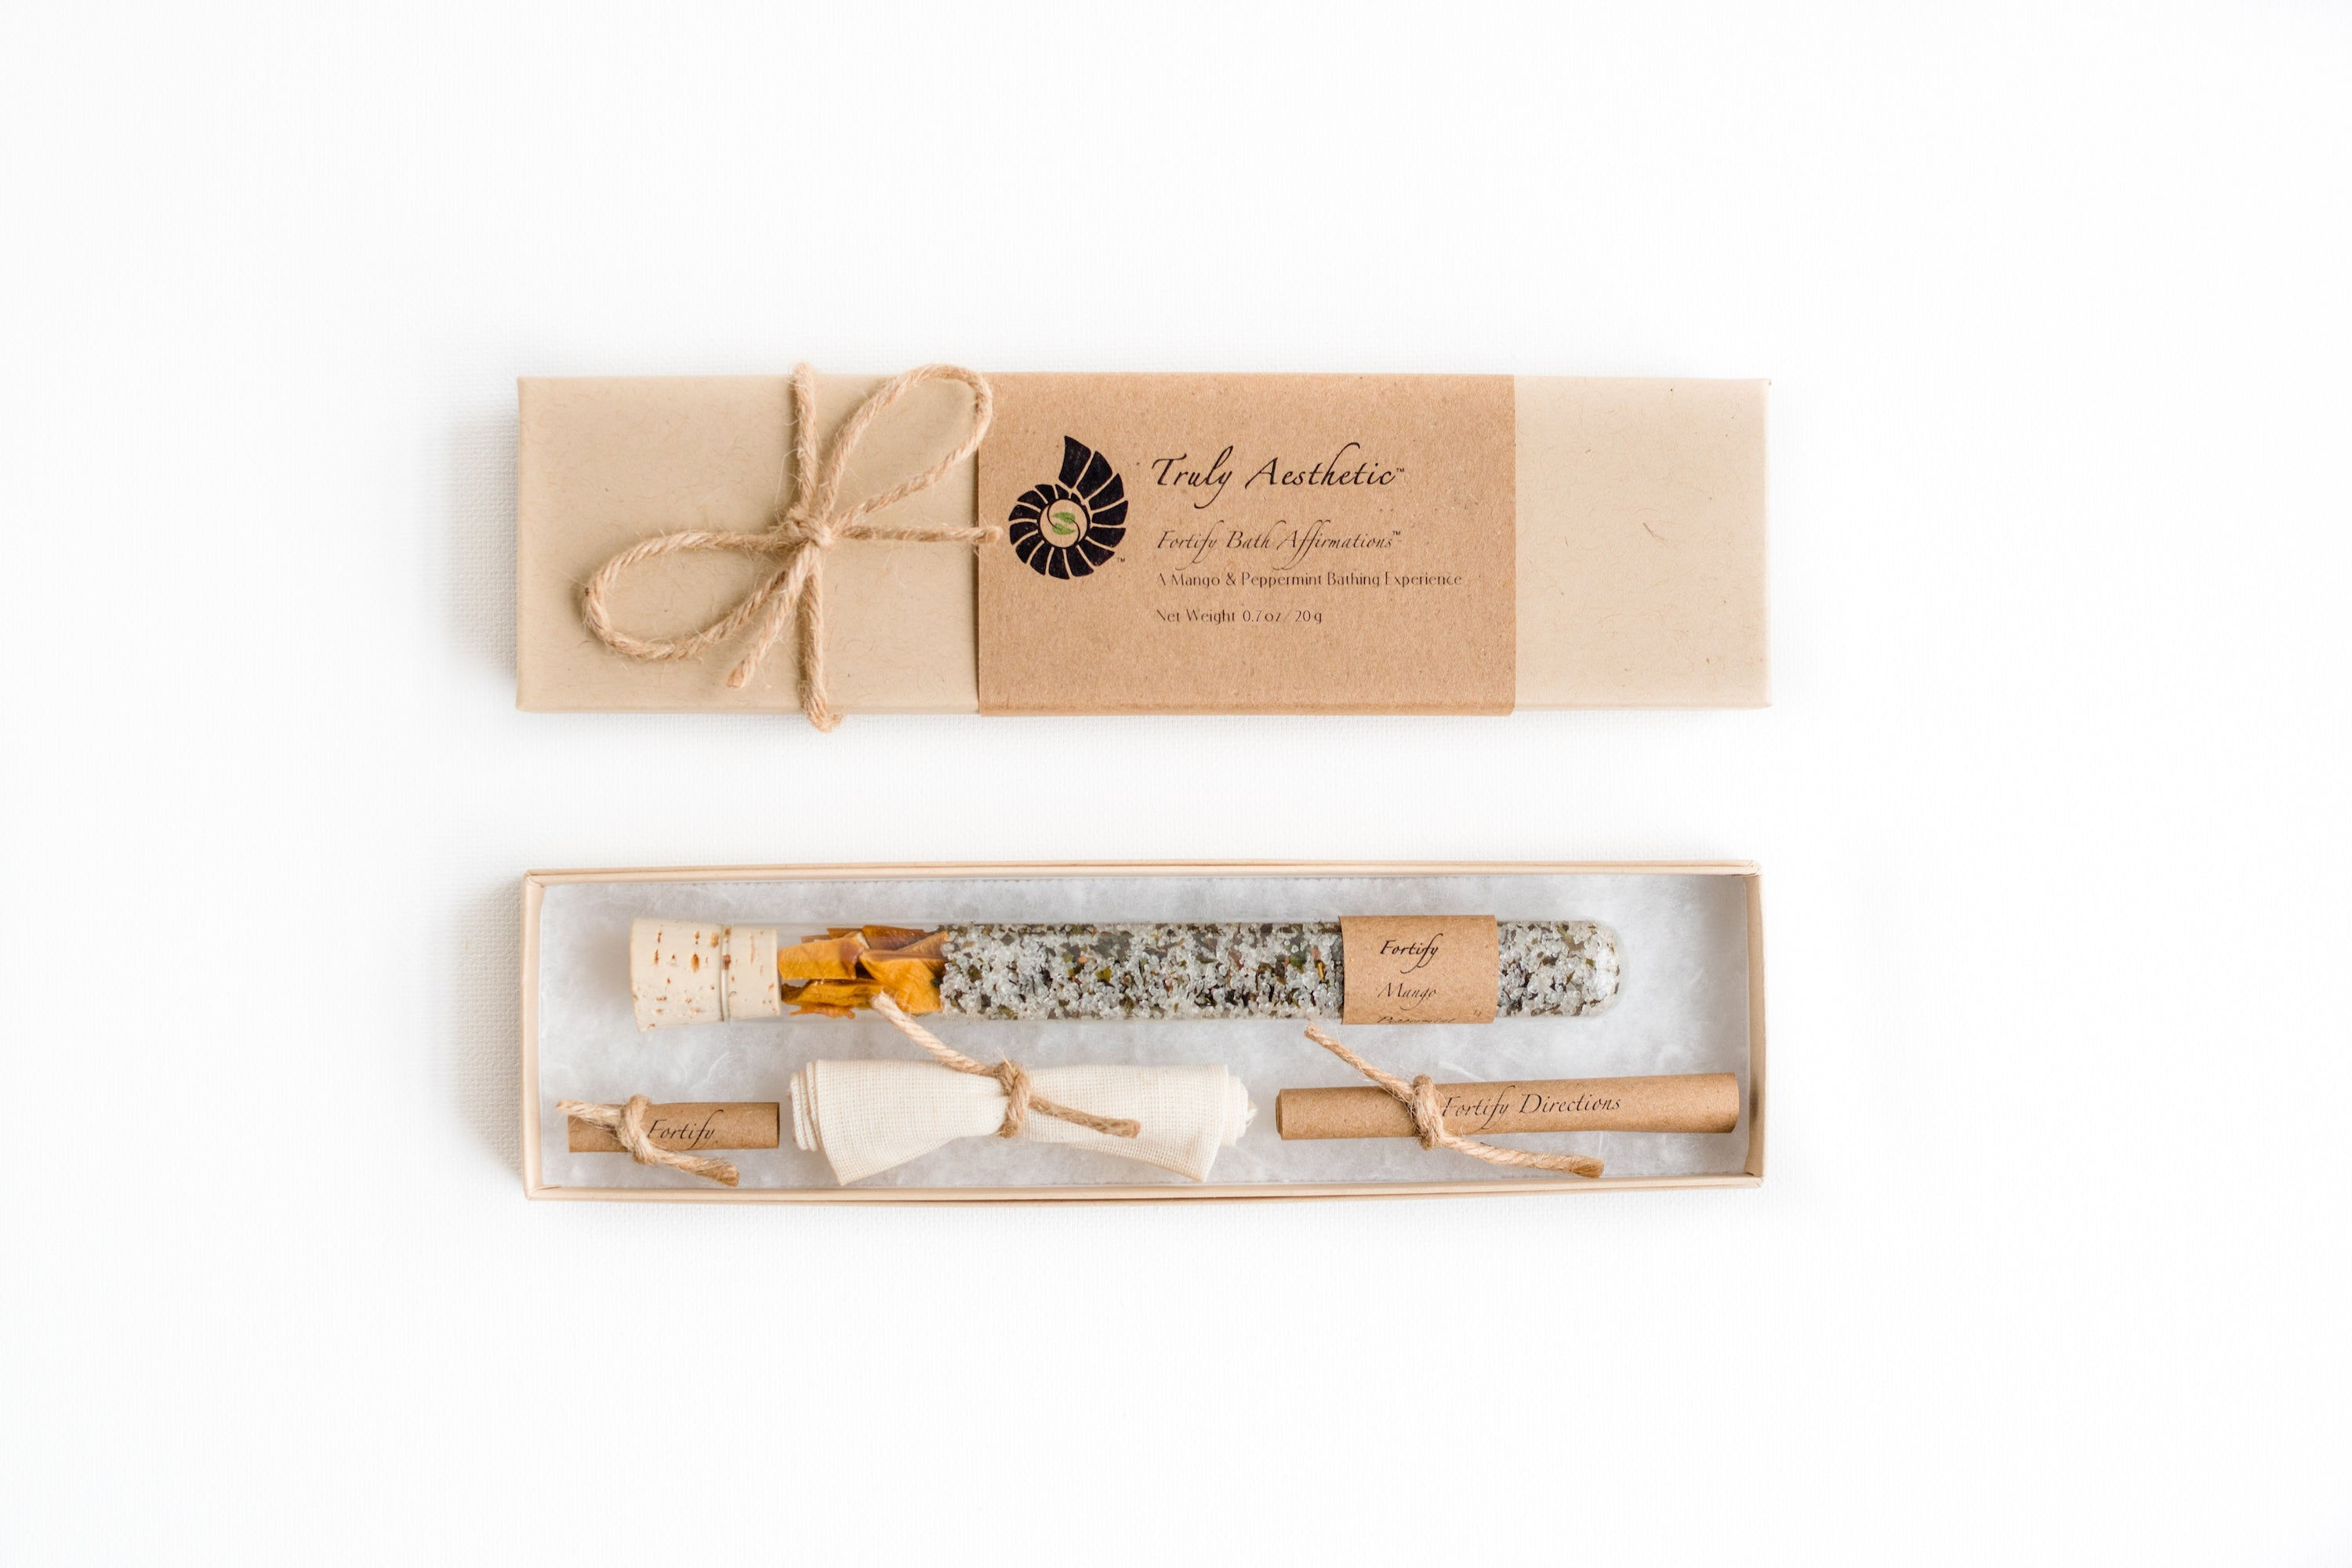 Truly Aesthetic Fortify Mango Peppermint Petite Bath Affirmations Bath Salts Gift Box Set Packaging